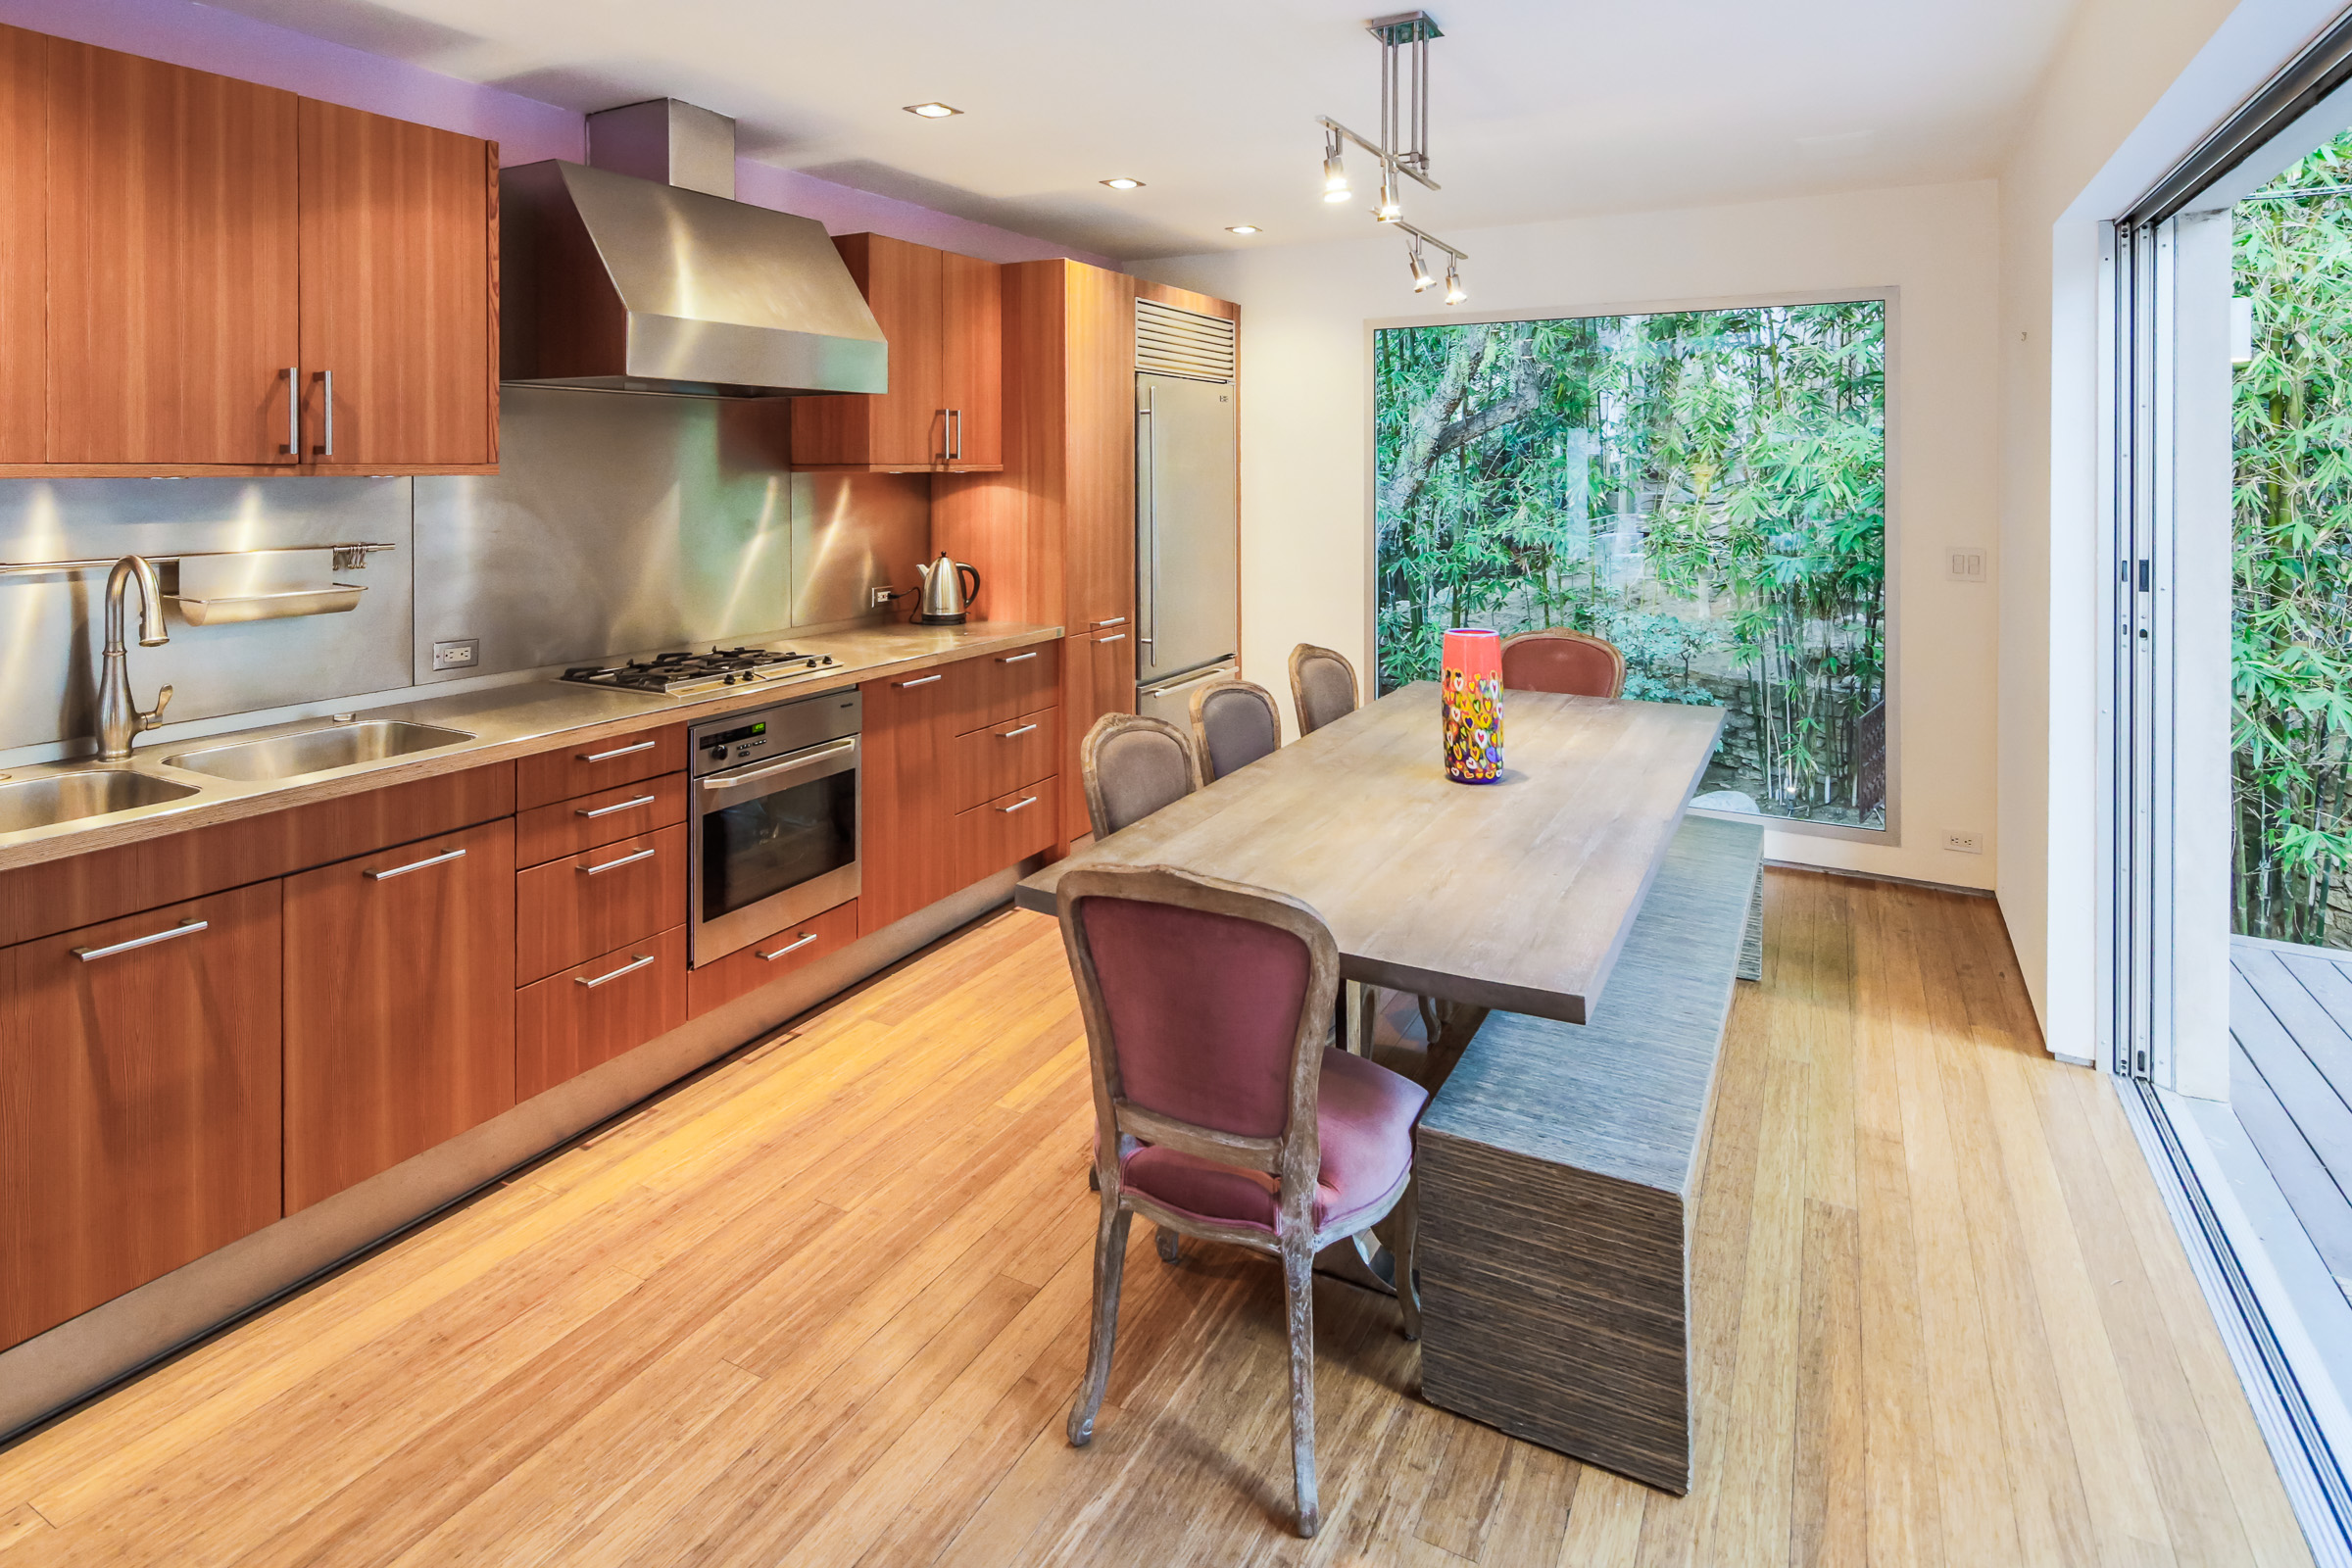 2050 stanley hills drive-8 dining room and kitchen.jpg